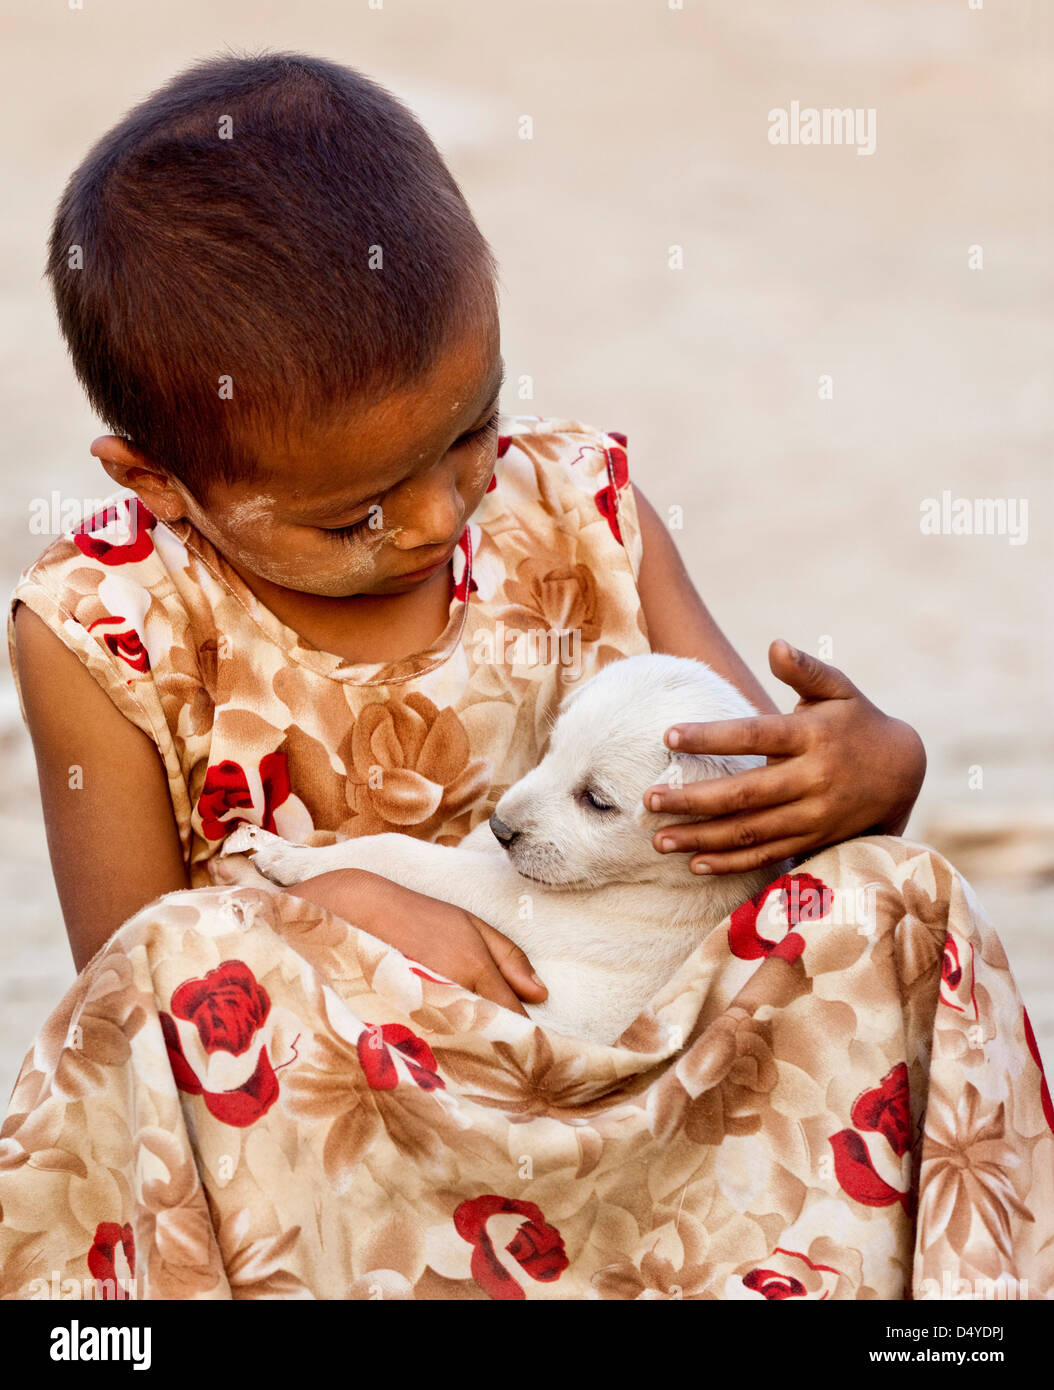 A girl tenderly cradles a puppy, Mandalay, Myanmar. - Stock Image